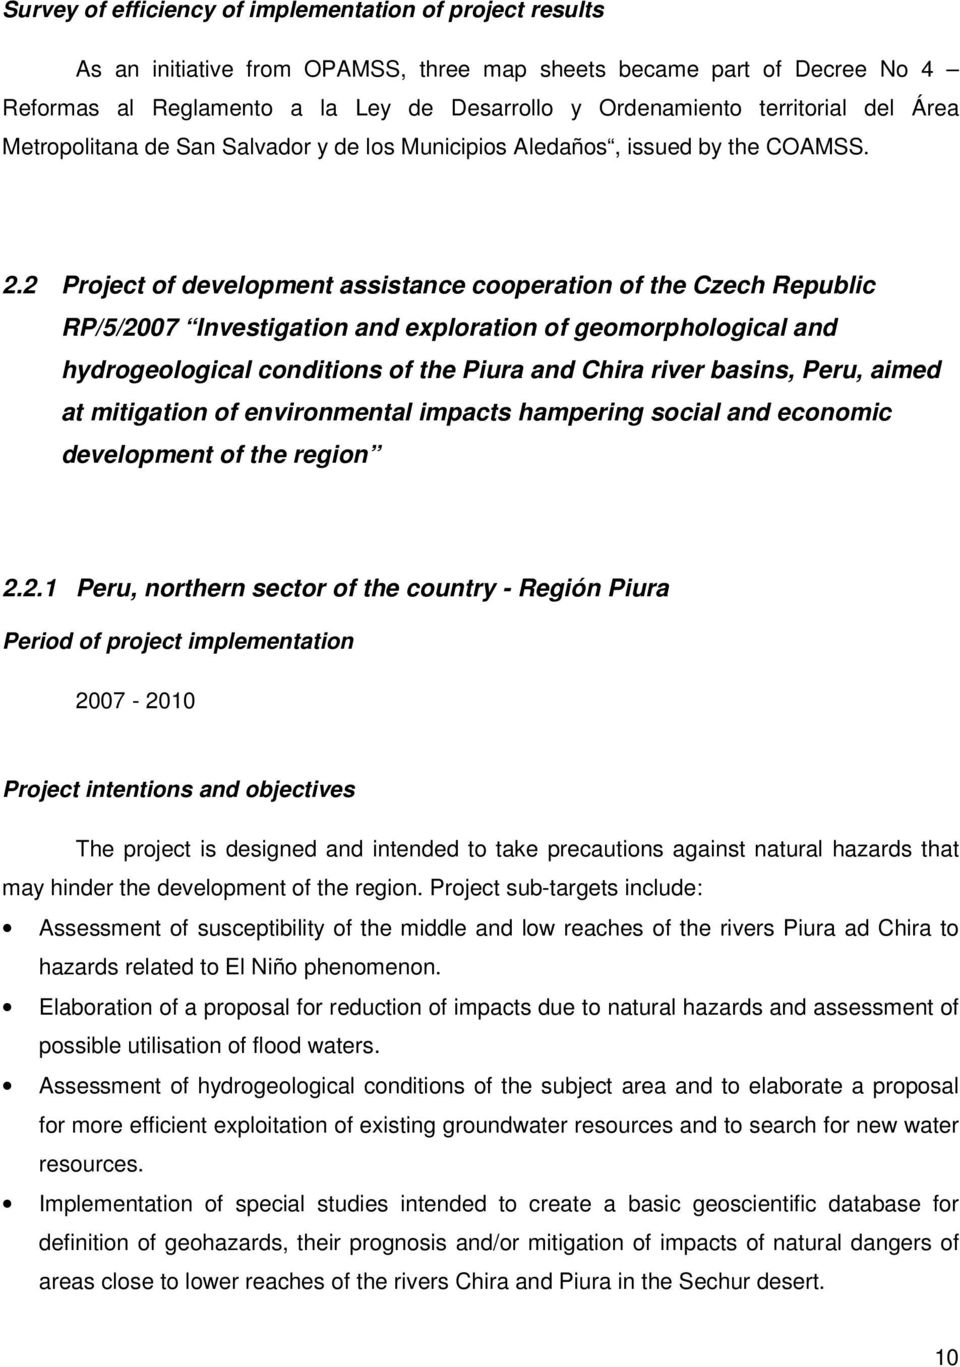 2 Project of developmt assistance cooperation of the Czech Republic RP/5/2007 Investigation and exploration of geomorphological and hydrogeological conditions of the Piura and Chira river basins,